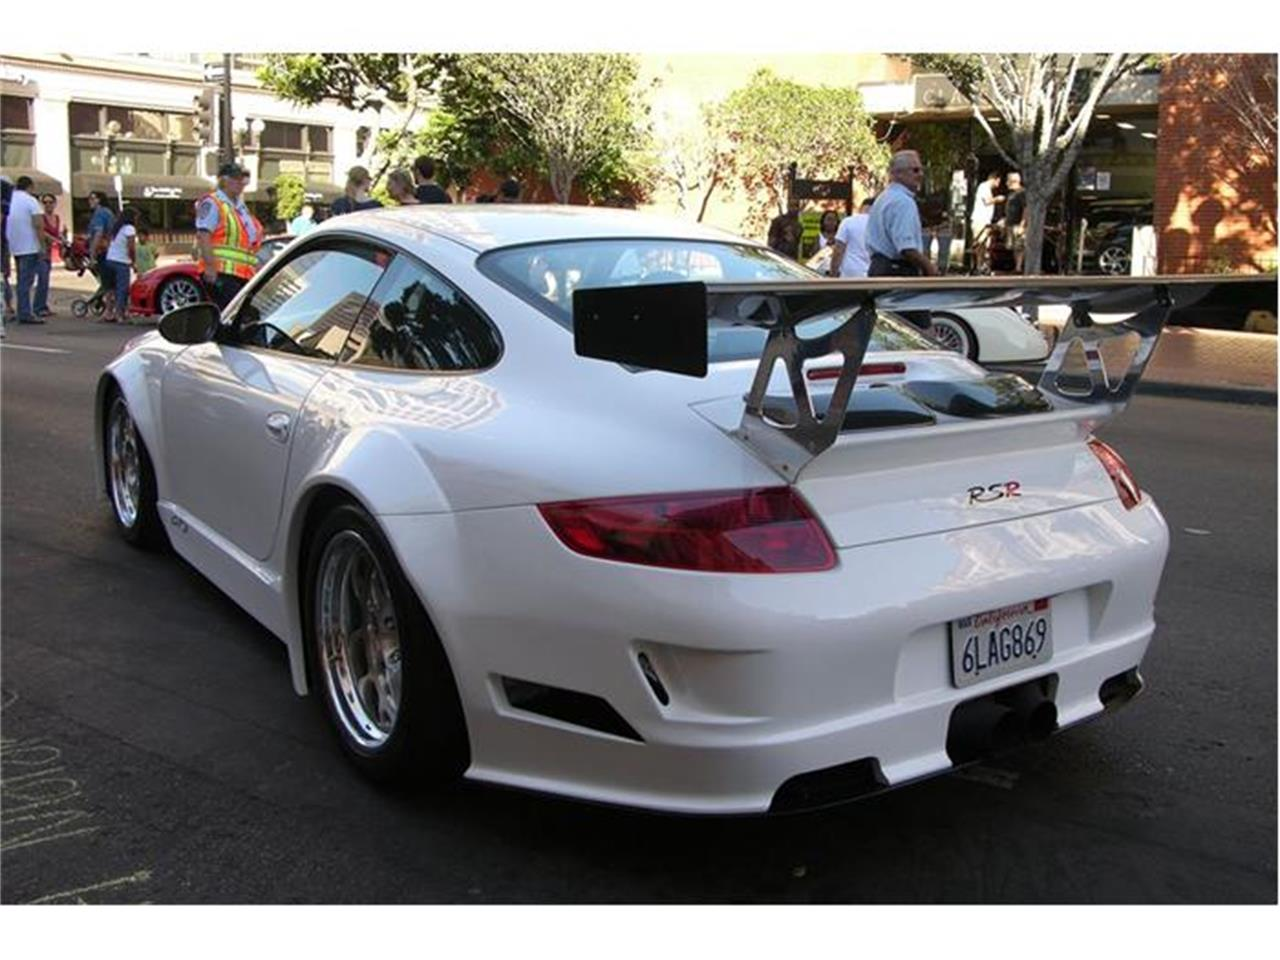 Large Picture of '01 Porsche 911 located in California Auction Vehicle Offered by Beverly Hills Motor Cars - 3M40